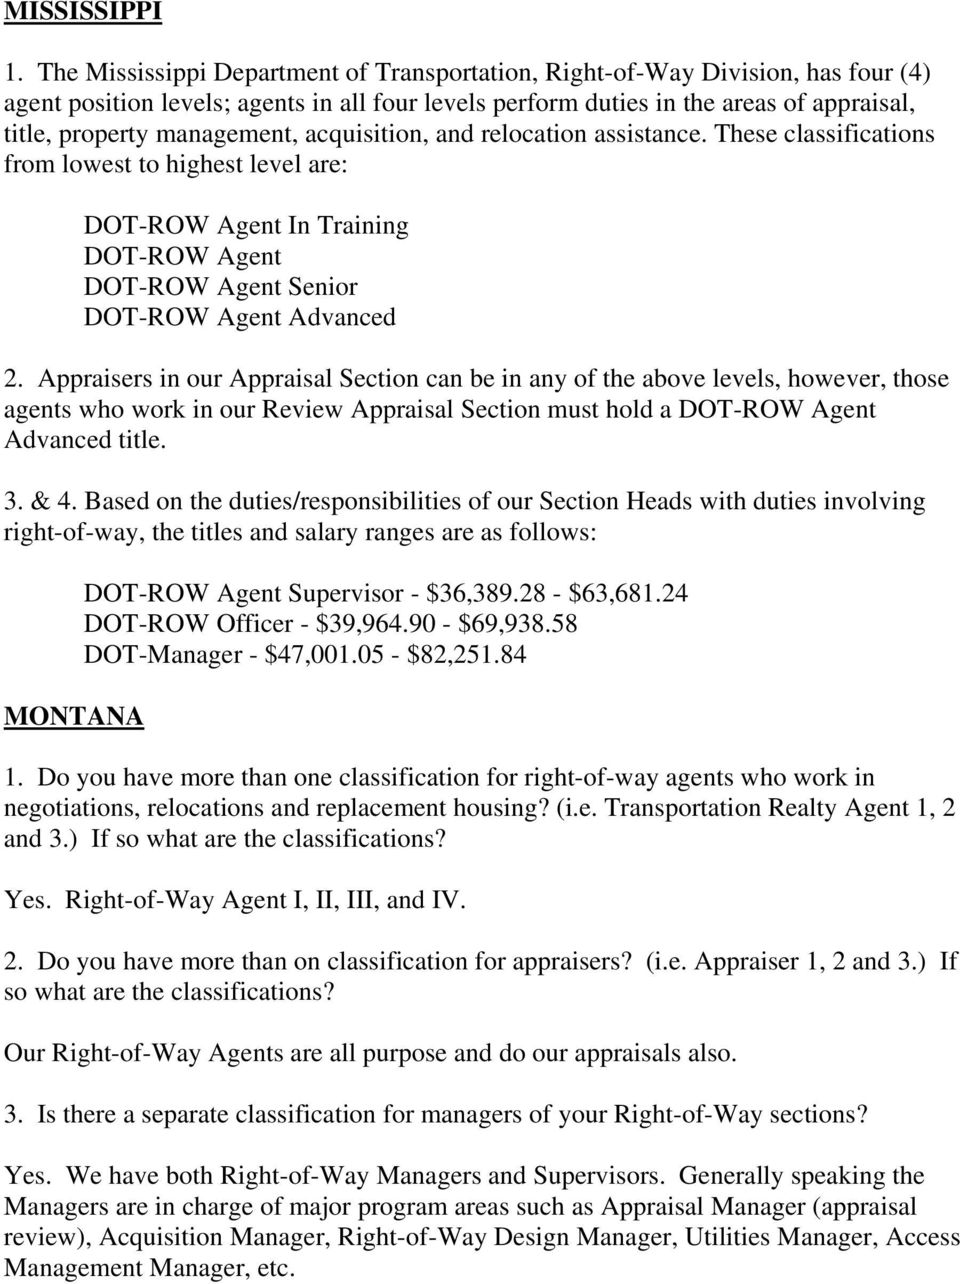 CLASSIFICATION AND SALARY RANGES RIGHT-OF-WAY PERSONNEL - PDF